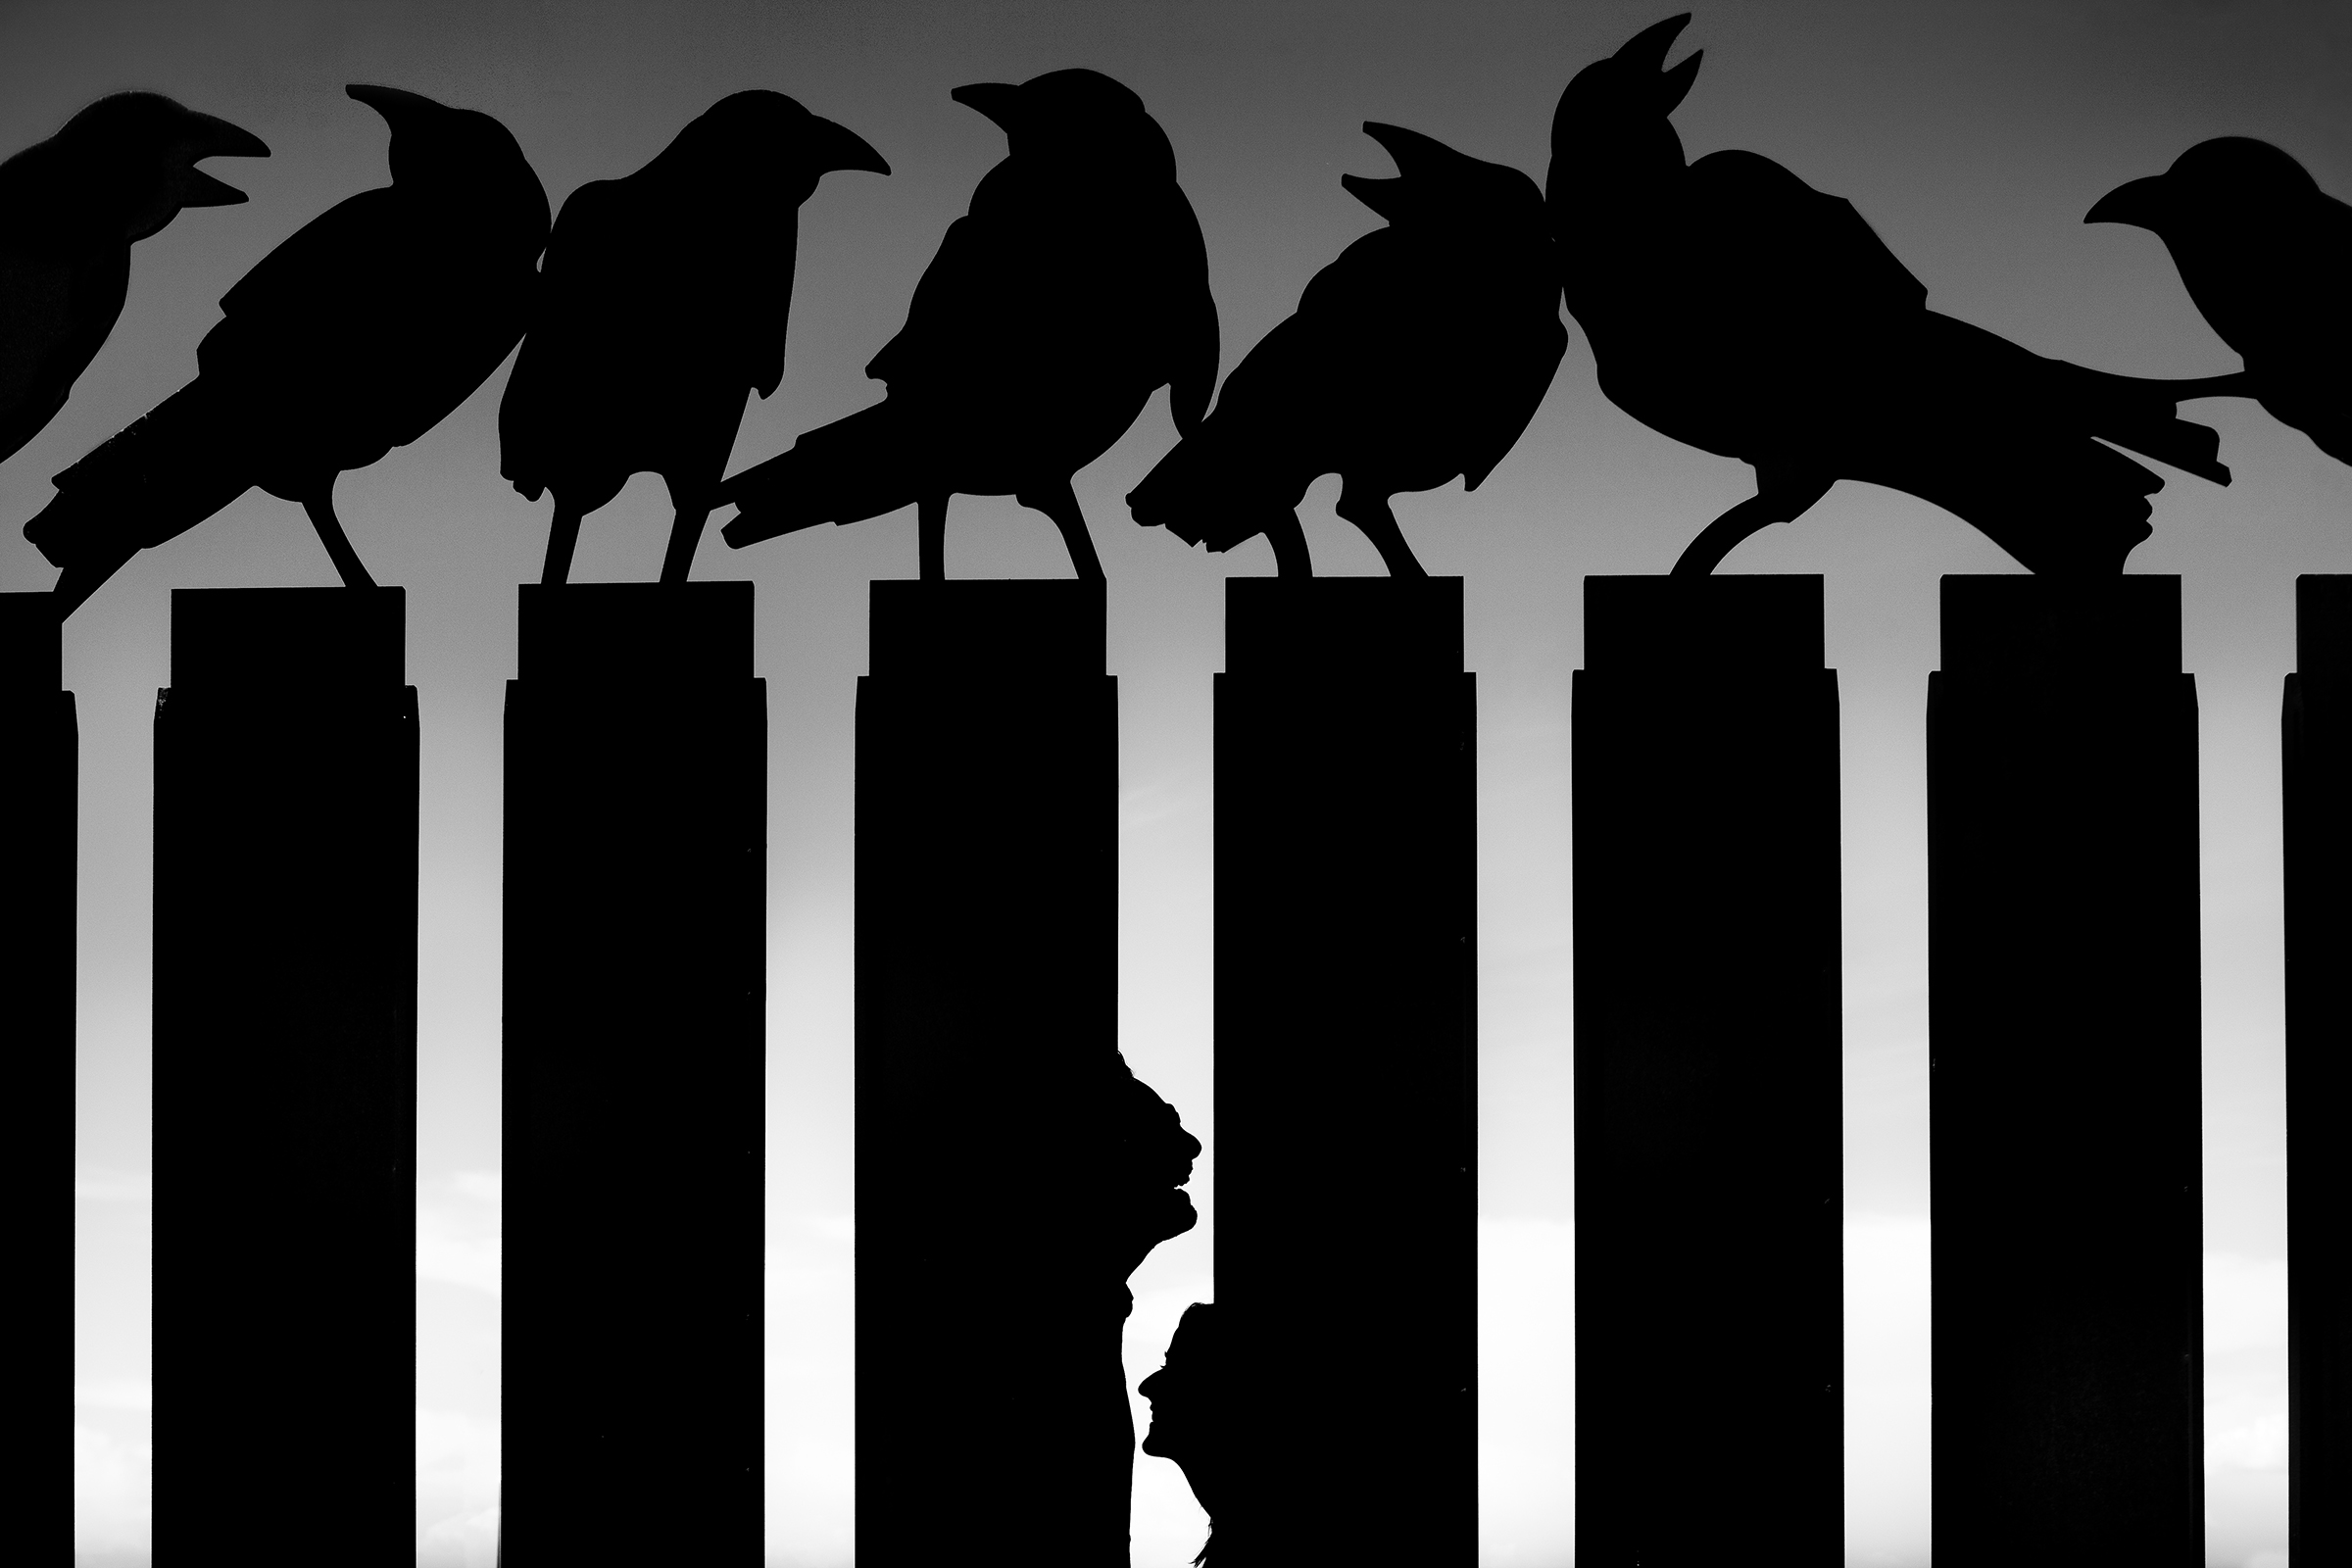 50-best-wedding-photo-concepts-silhouette-with-crows-by-lax-photography-spain